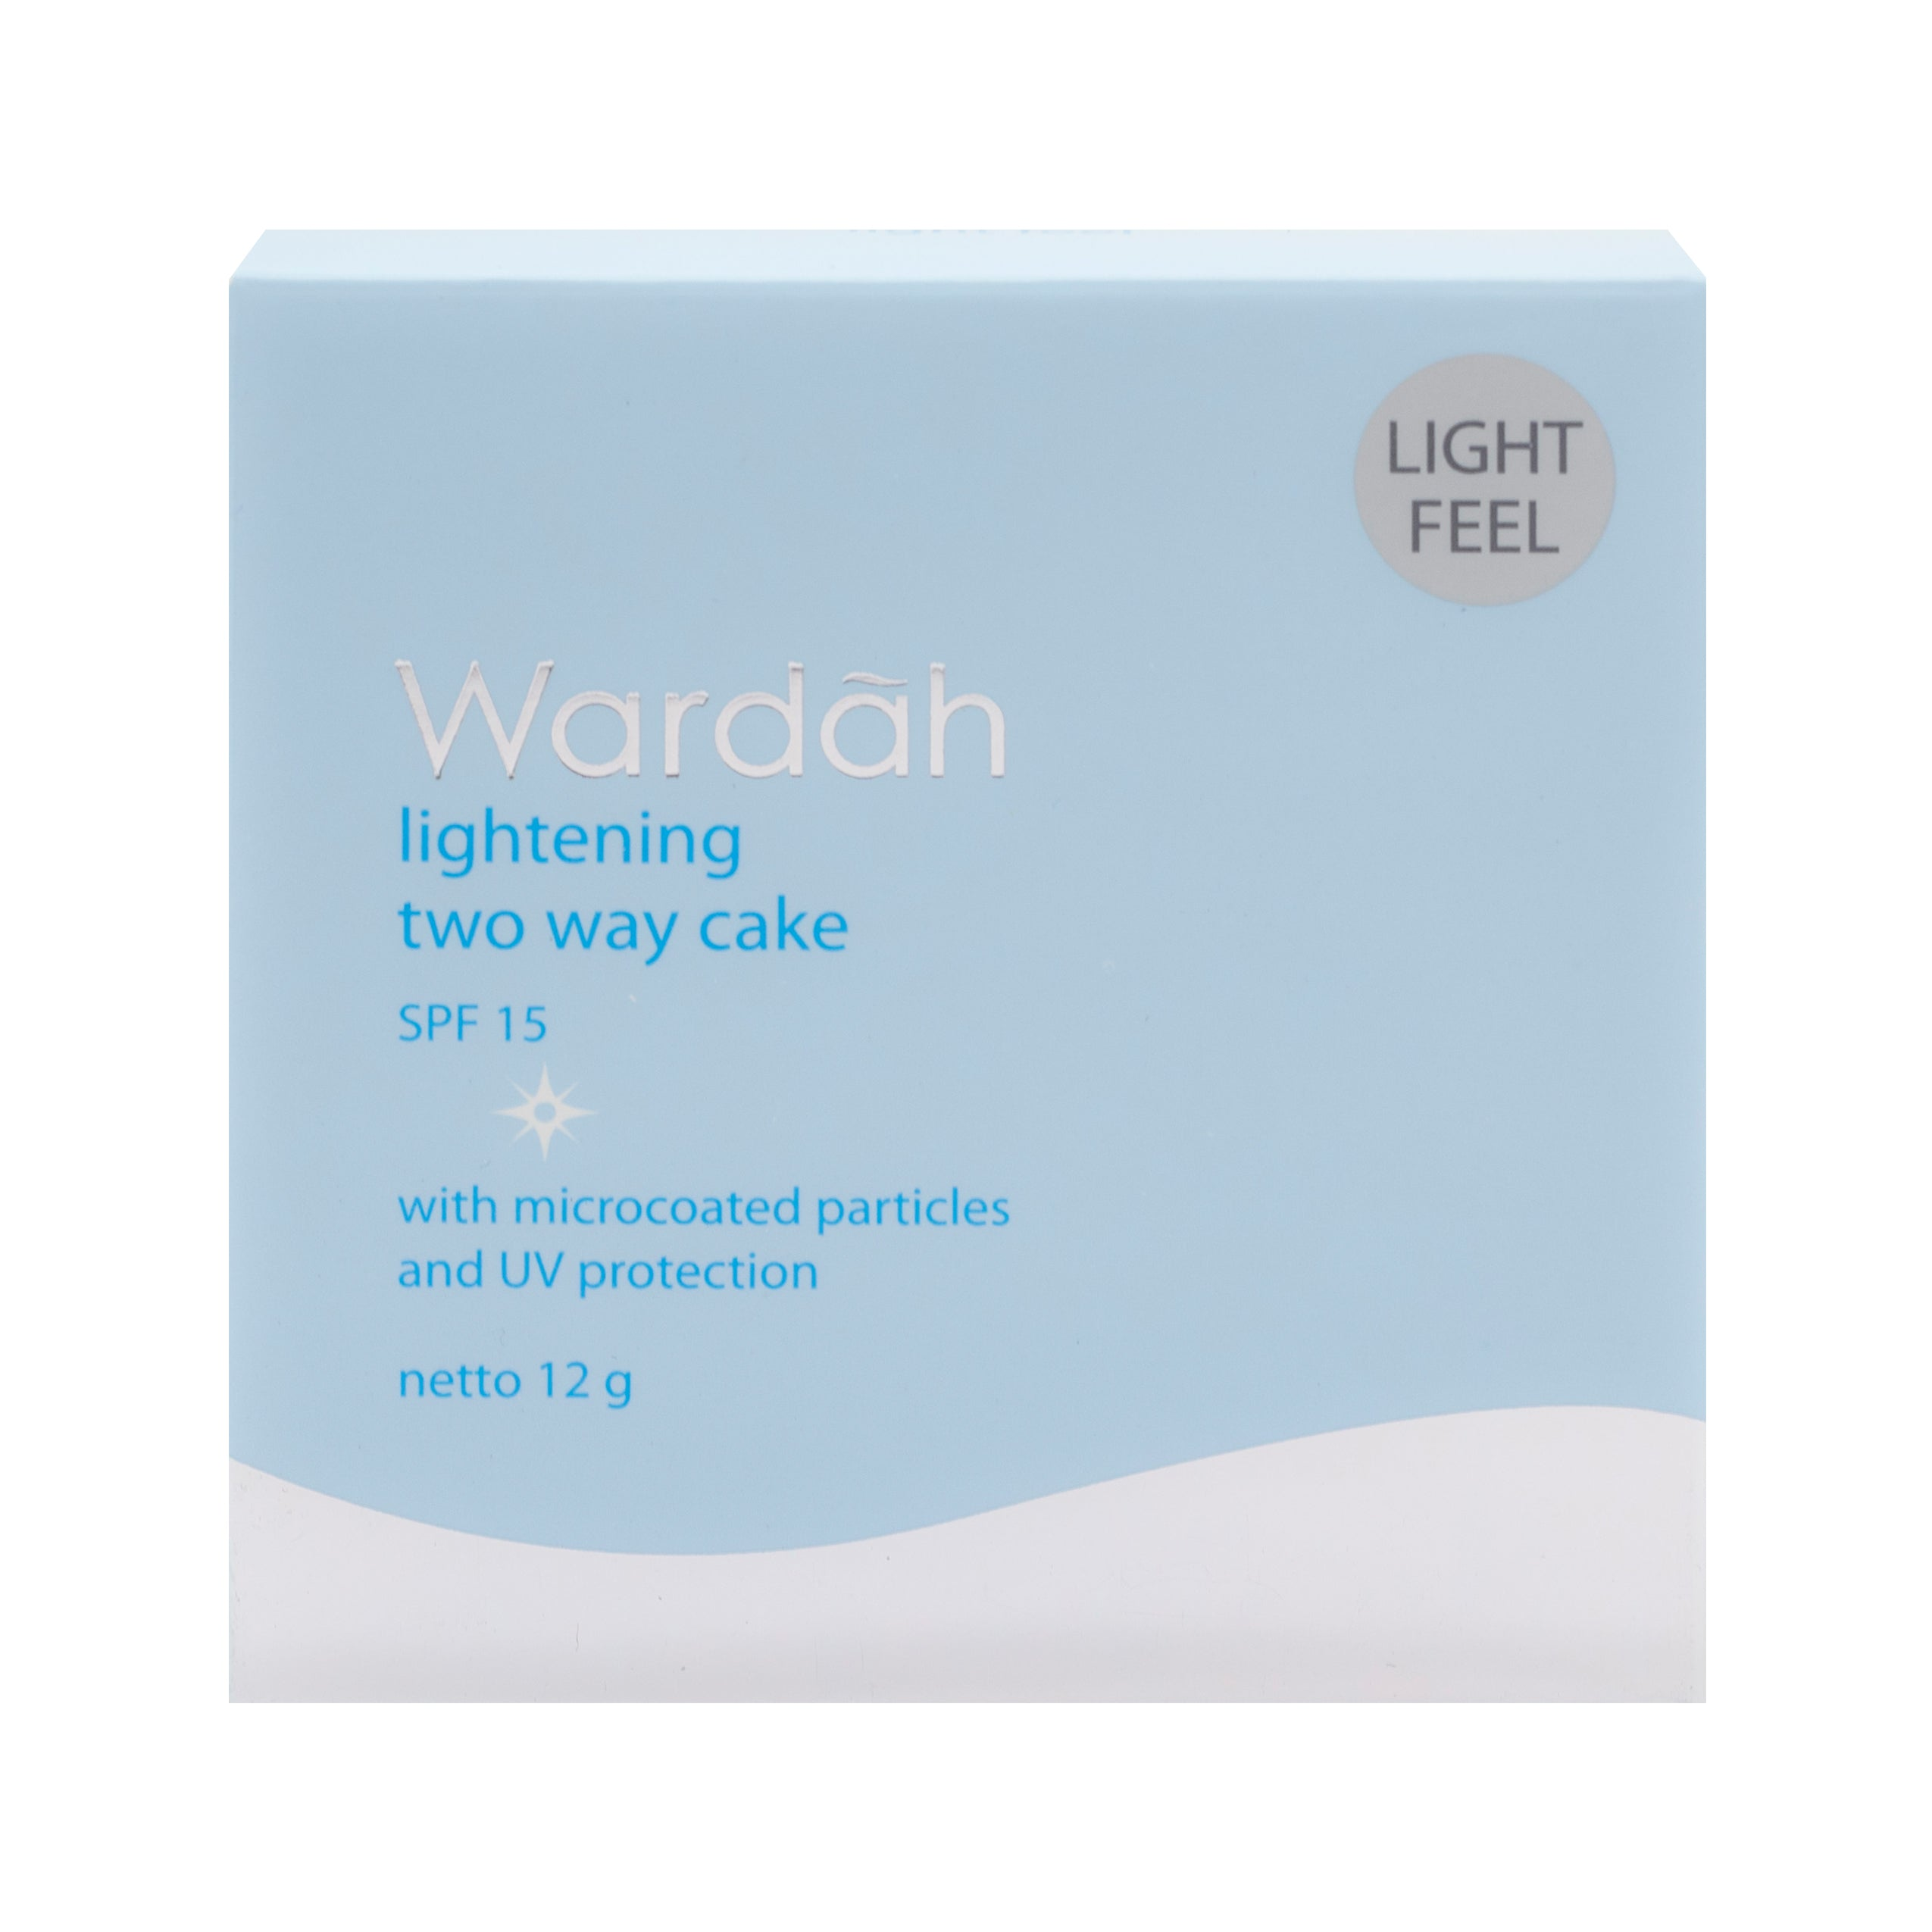 Wardah, Lightening TWC Light Feel, 01 Light Beige, 12 g